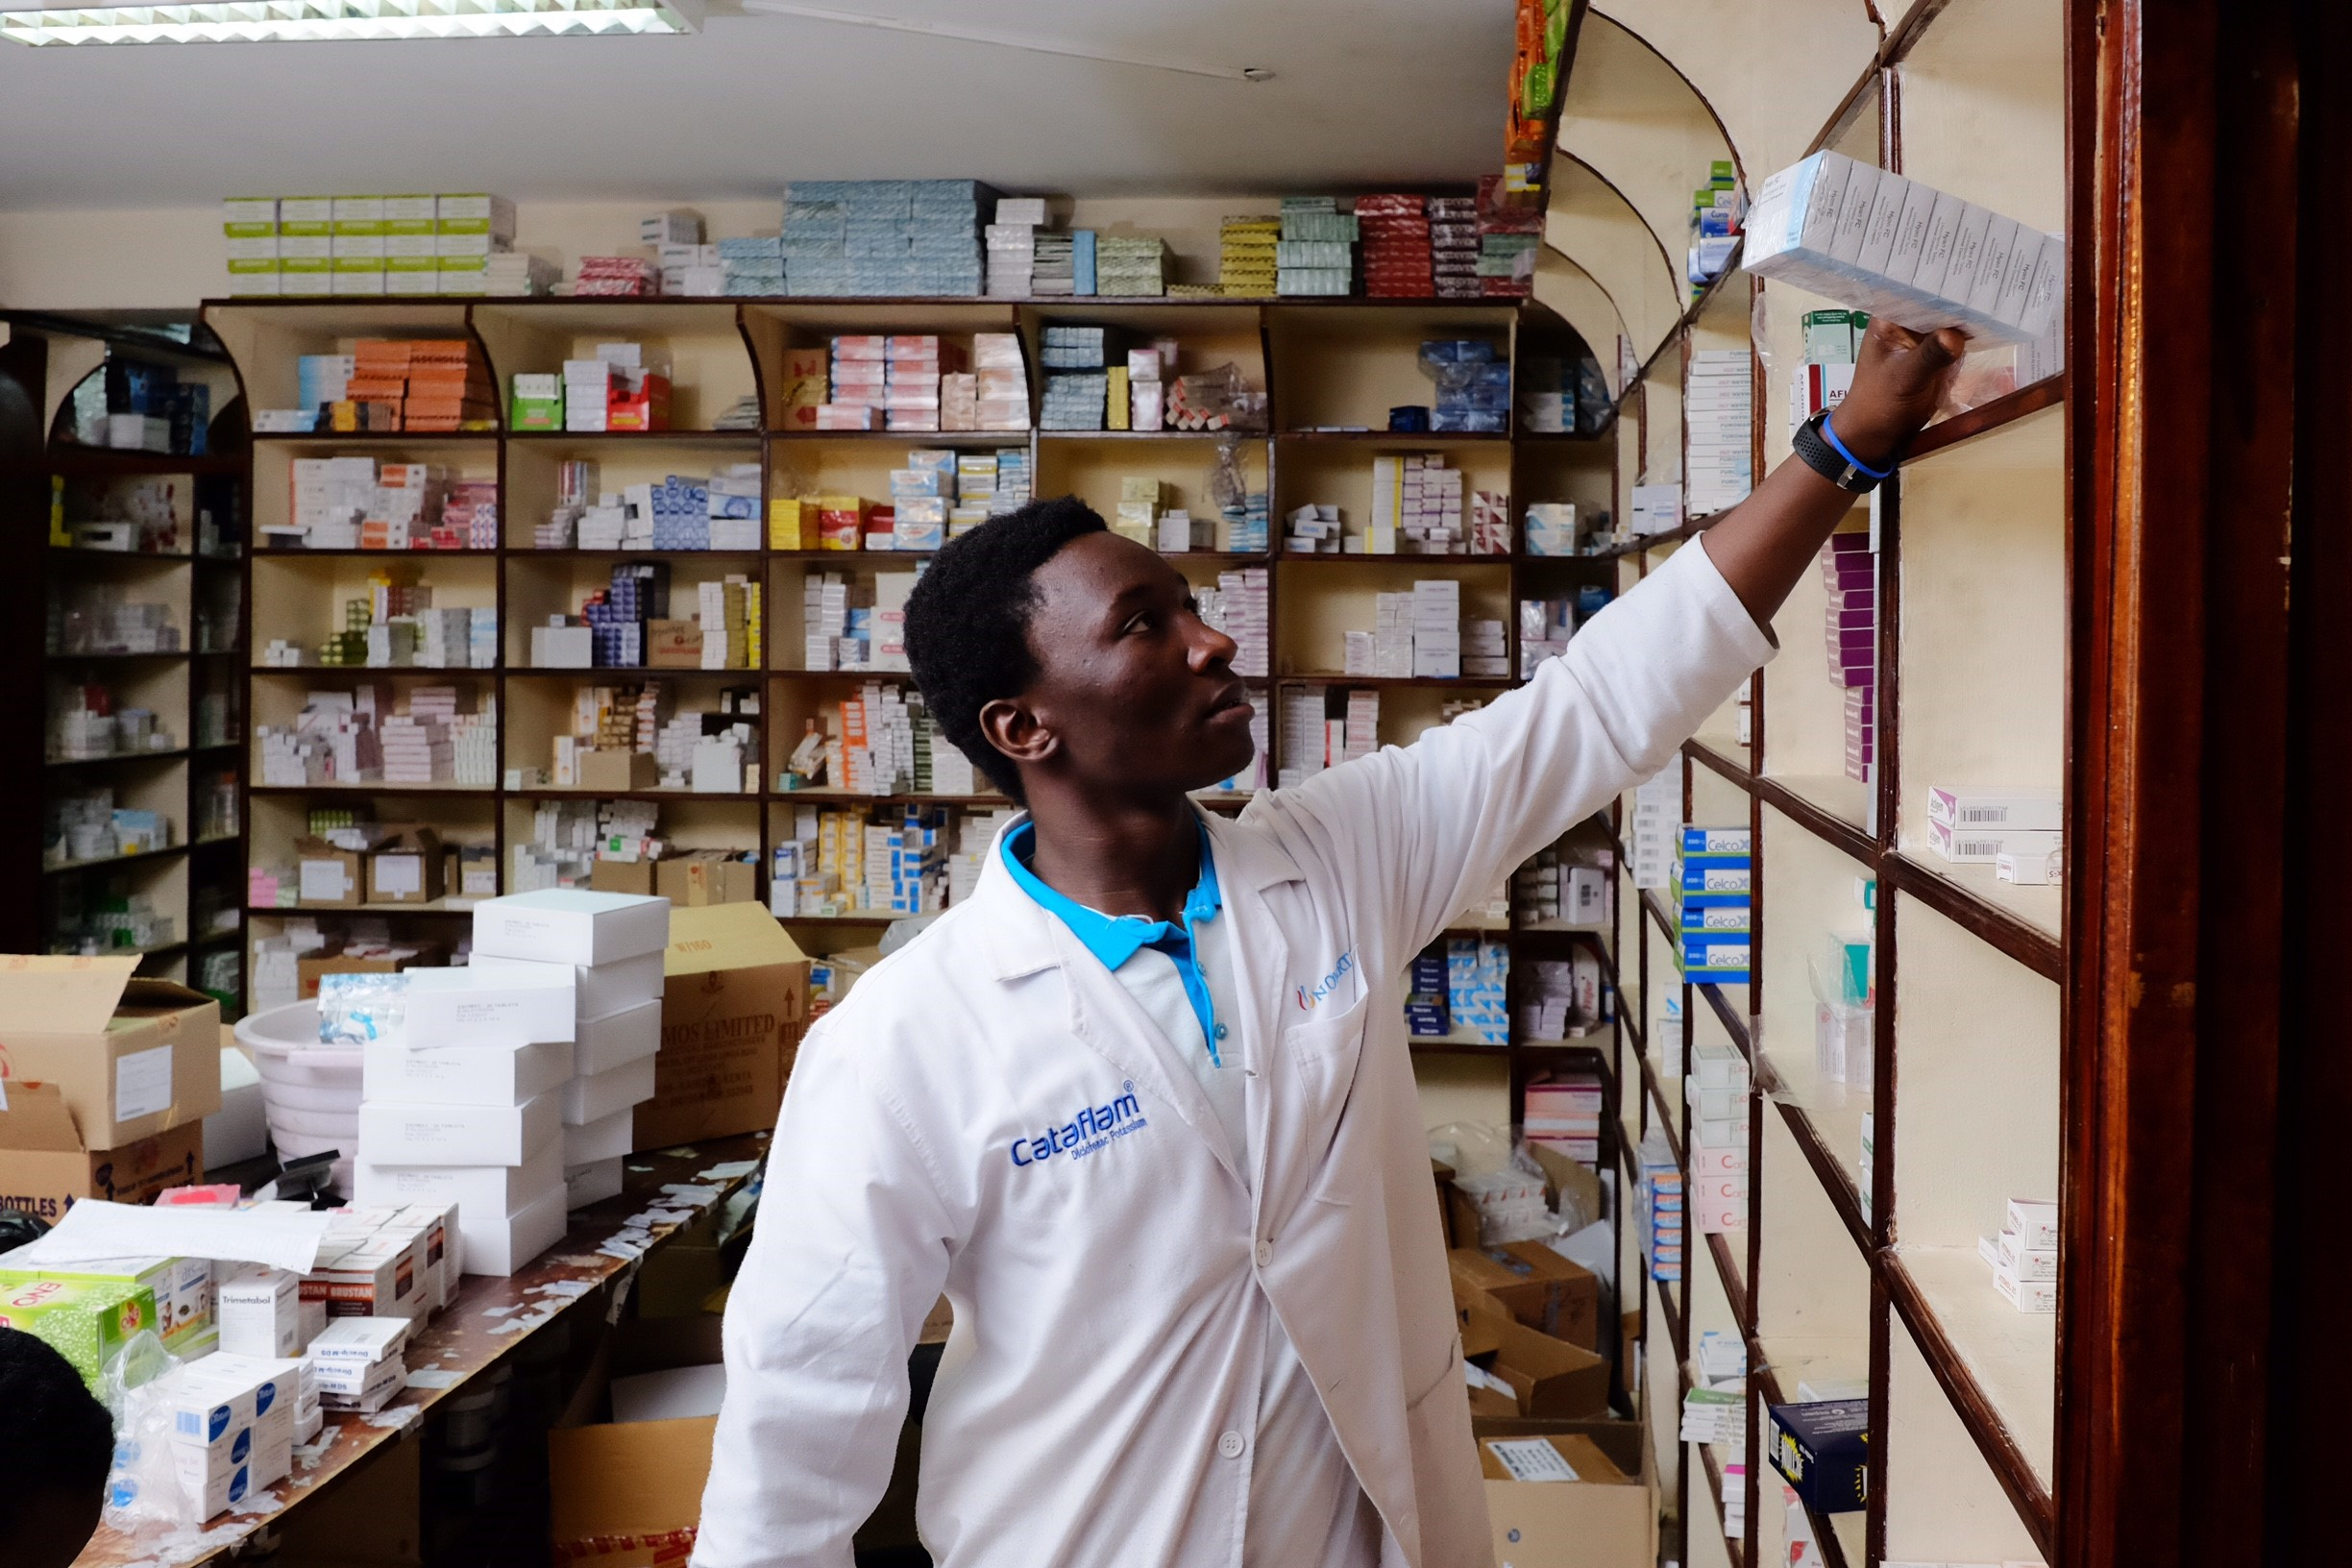 A pharmacist in Kenya. Source: Enabling Sustainable Health Equity (ESHE) Project